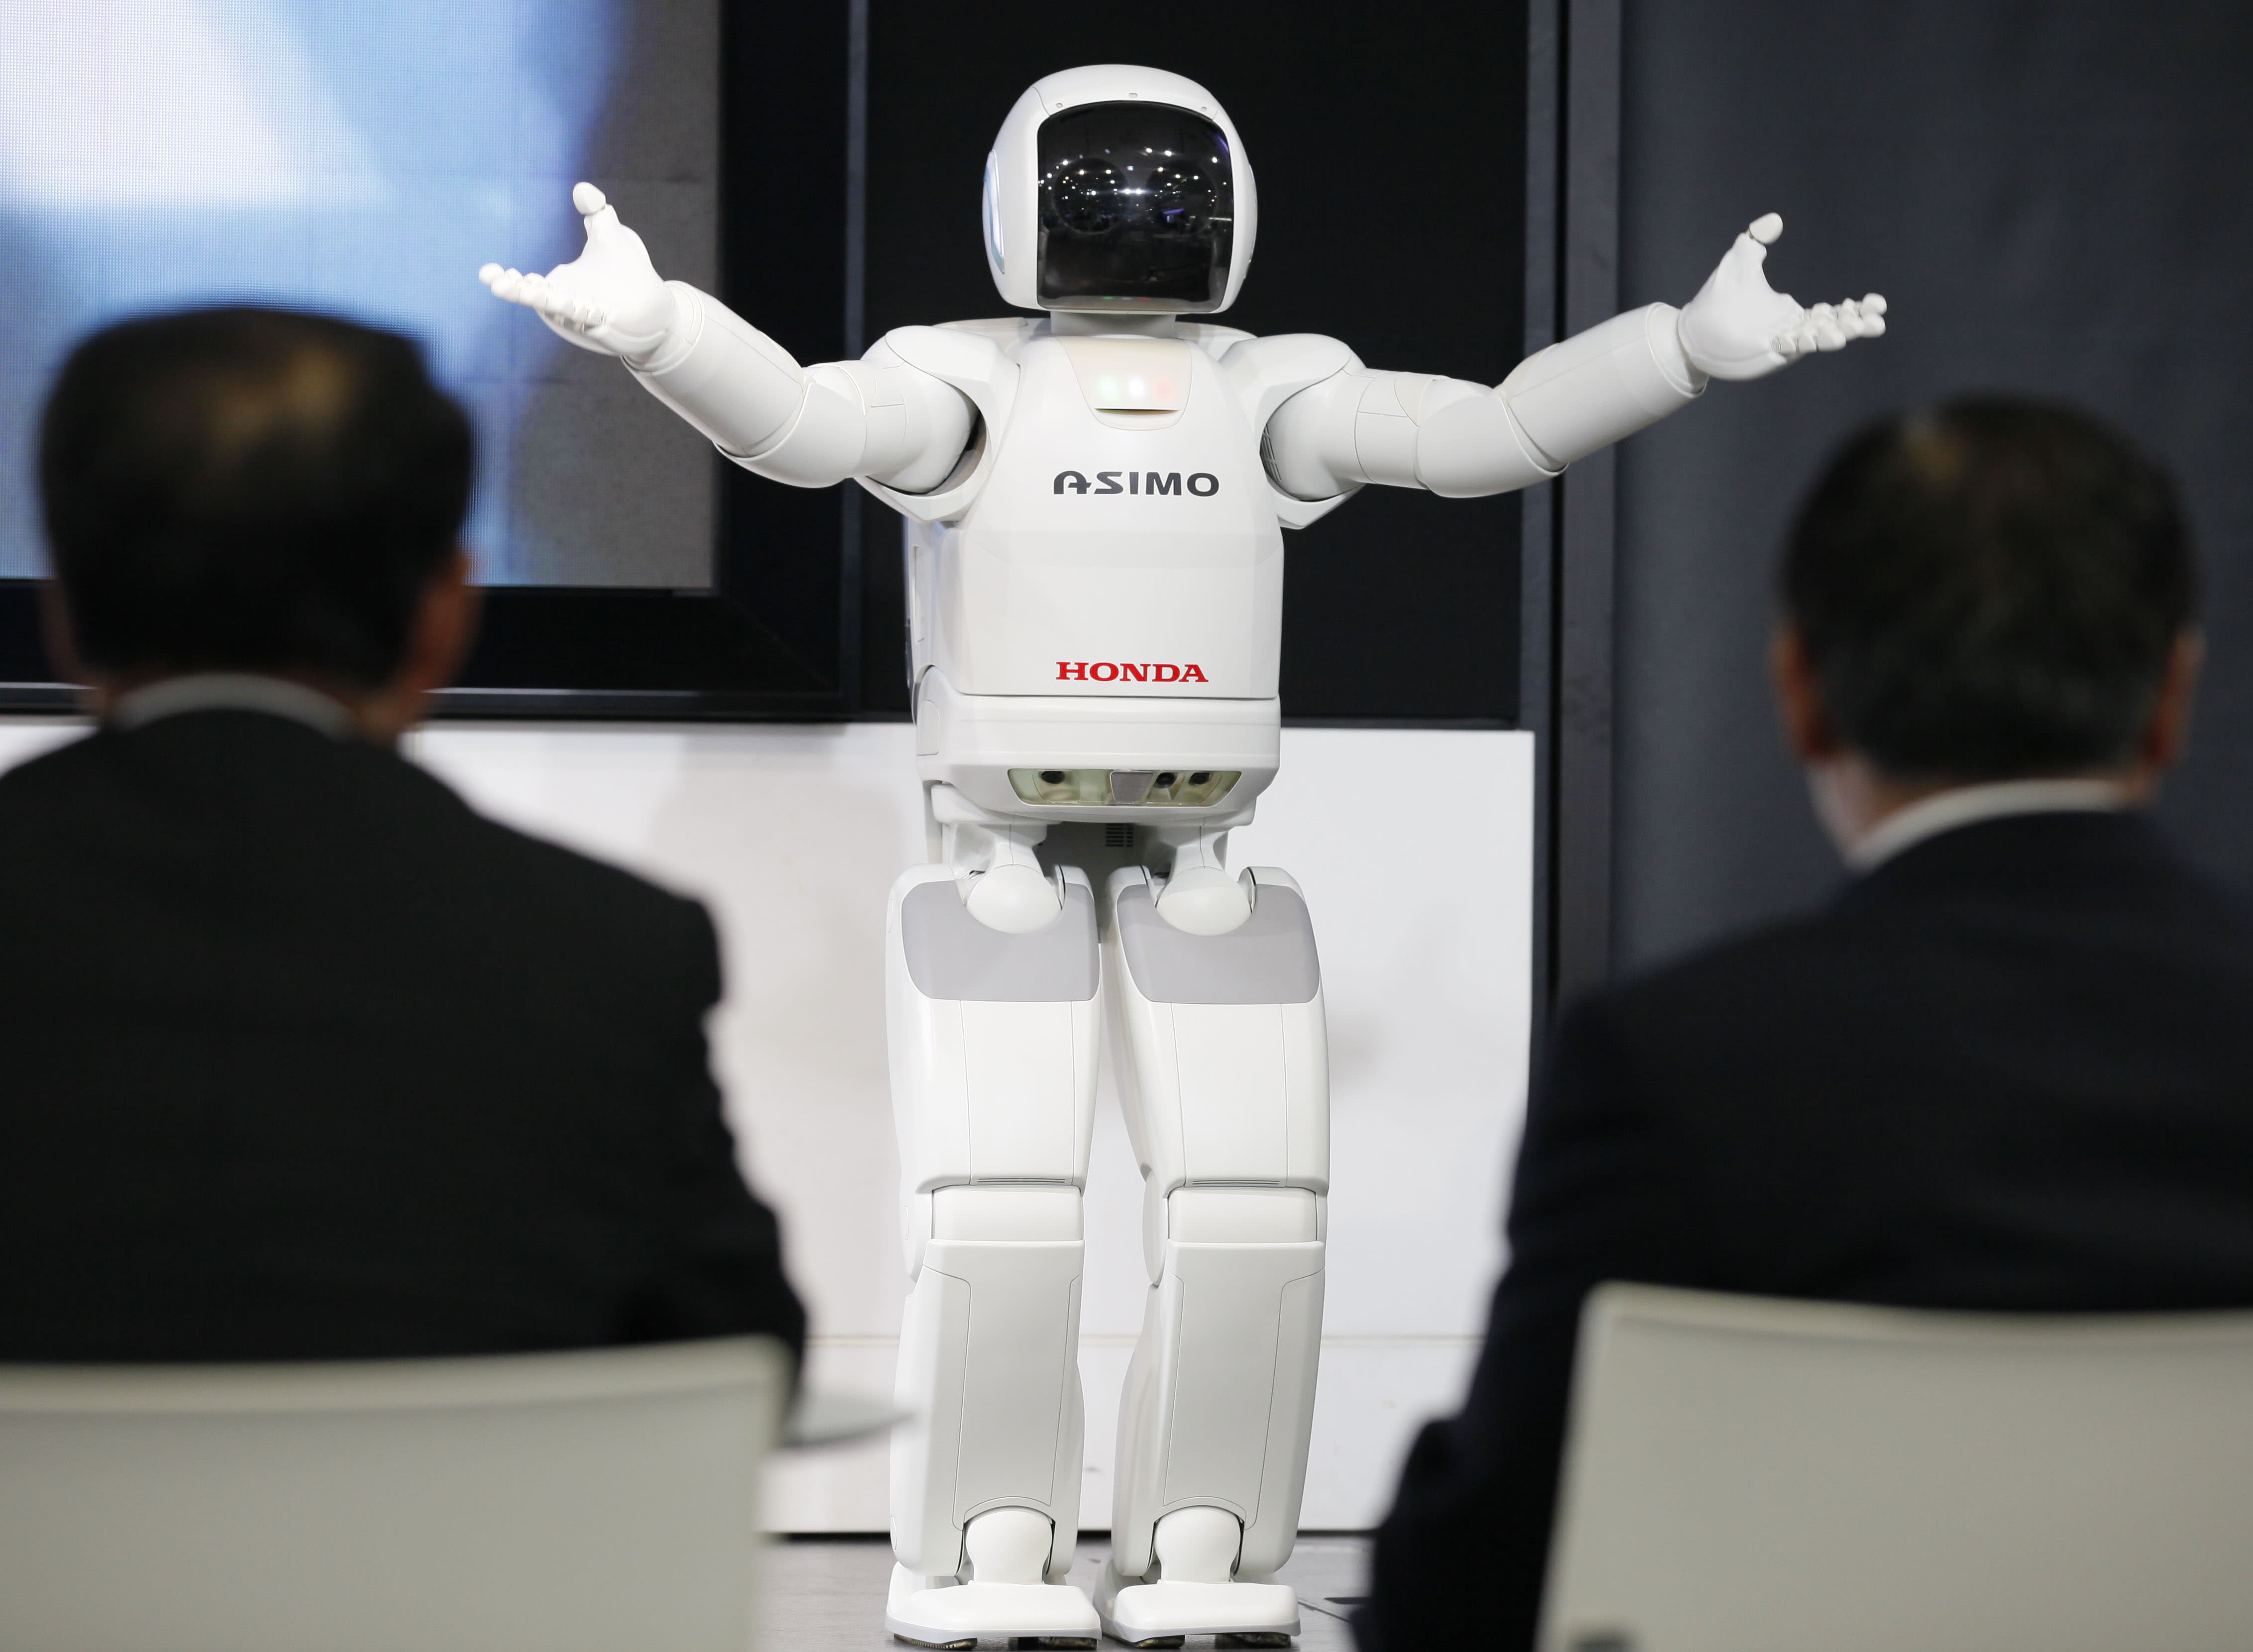 FILE - In this April 27, 2012 file photo, visitors watch a Honda Asimo robot performing at a showroom at the headquarters of Honda Motor Co. in Tokyo. Canon Inc. is moving toward fully automating digital camera production in an effort to cut costs - a key change being played out across Japan, a world leader in robotics. If successful, counting on machines can help preserve this nation's technological power - not the stereotype of machines snatching assembly line jobs from workers, Jun Misumi - company spokesman, said Monday, May 14. (AP Photo/Koji Sasahara, File)